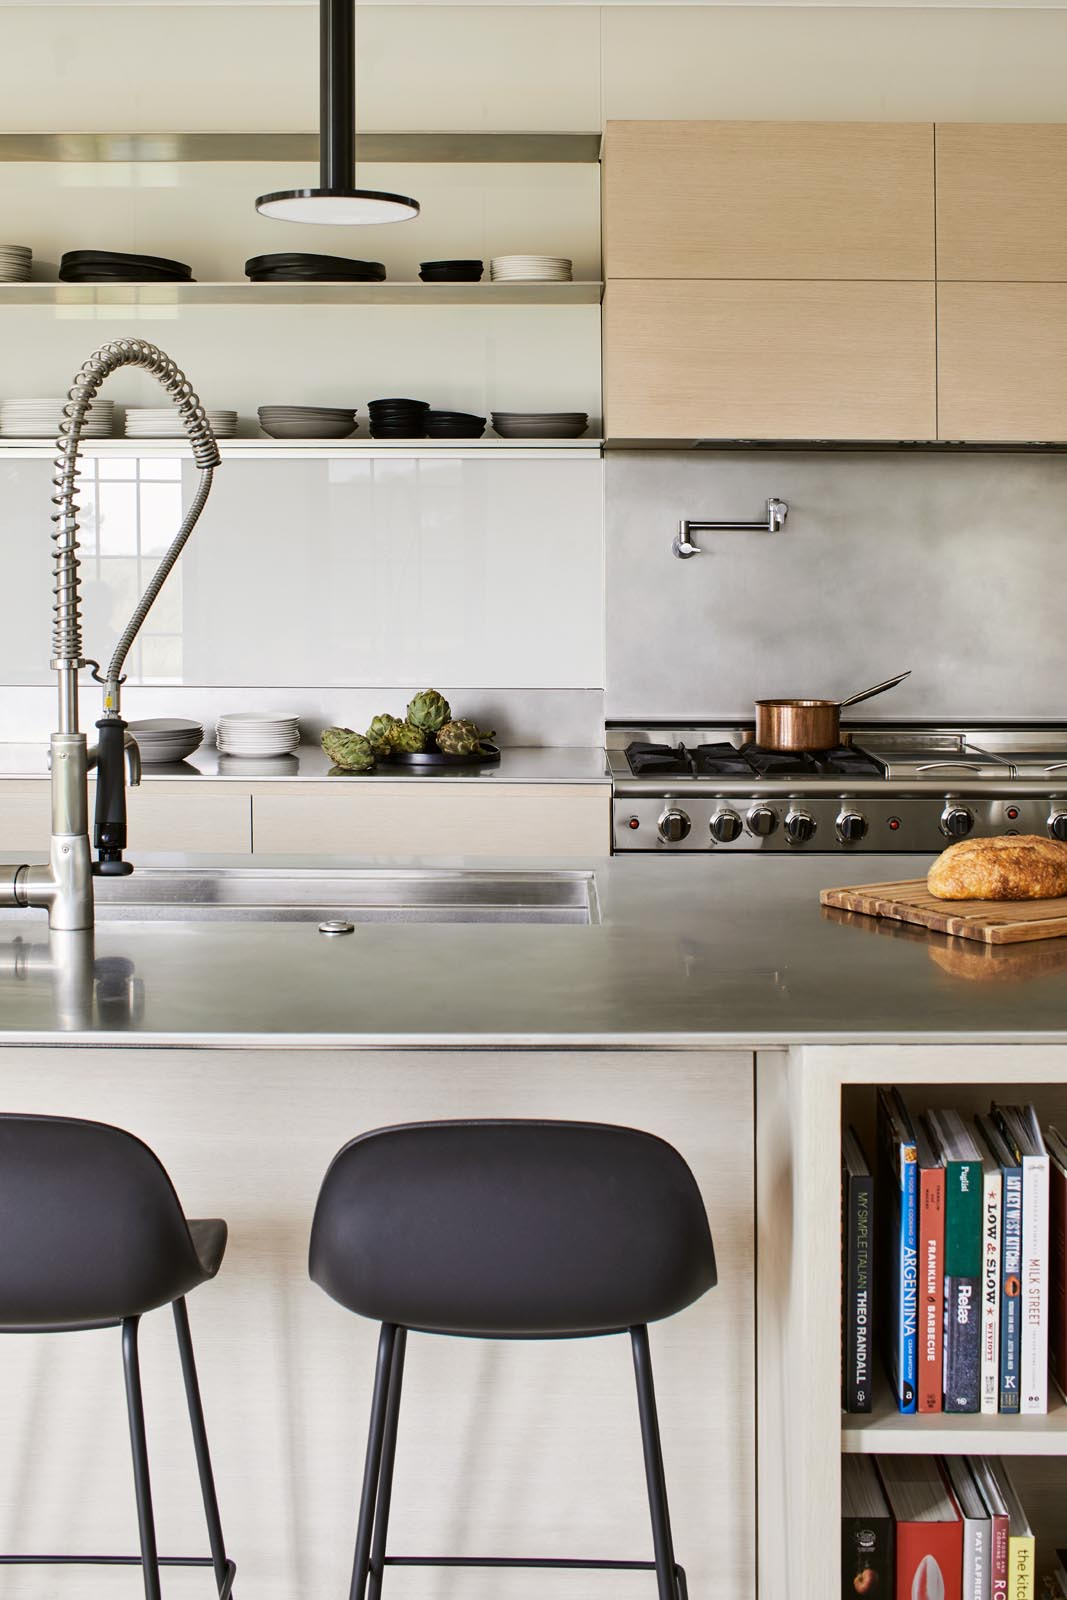 In the kitchen, there's minimalist light wood cabinets and a long island with black pendant lights and room for multiple stools.